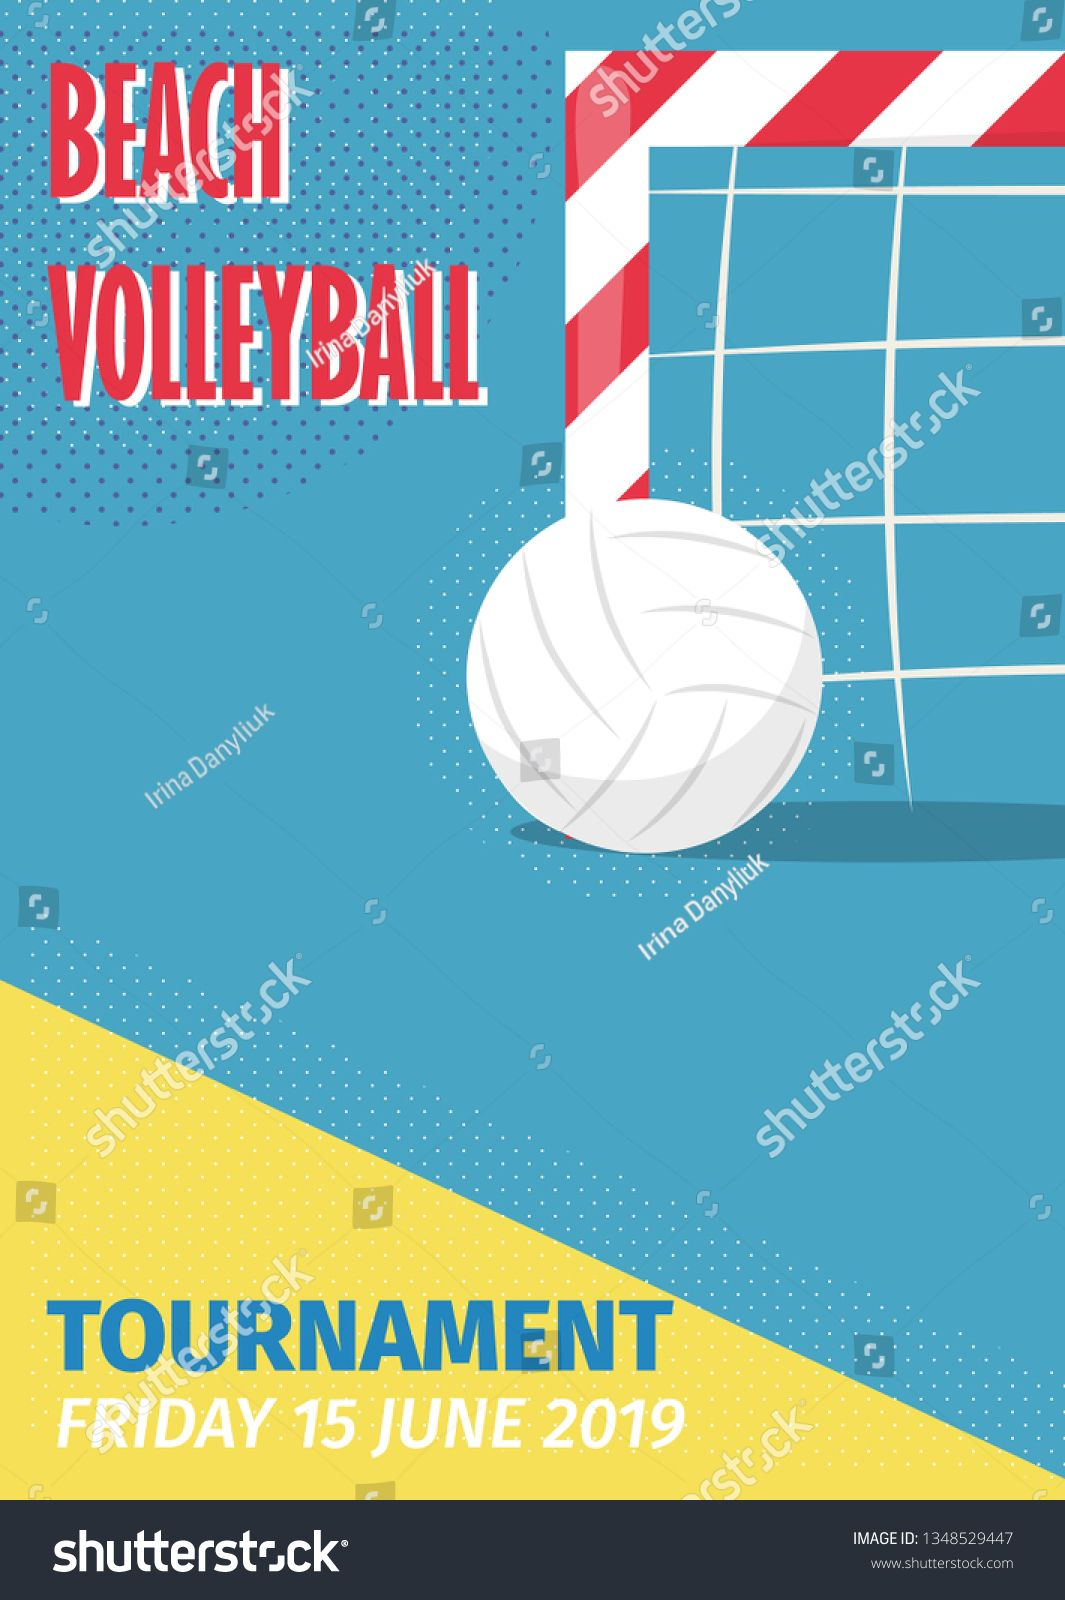 Beach Volleyball Sport Poster Vector Illustration Summer Playing Beach Volley Team Competition Invitation P Sport Poster Volleyball Posters Summer Invitation